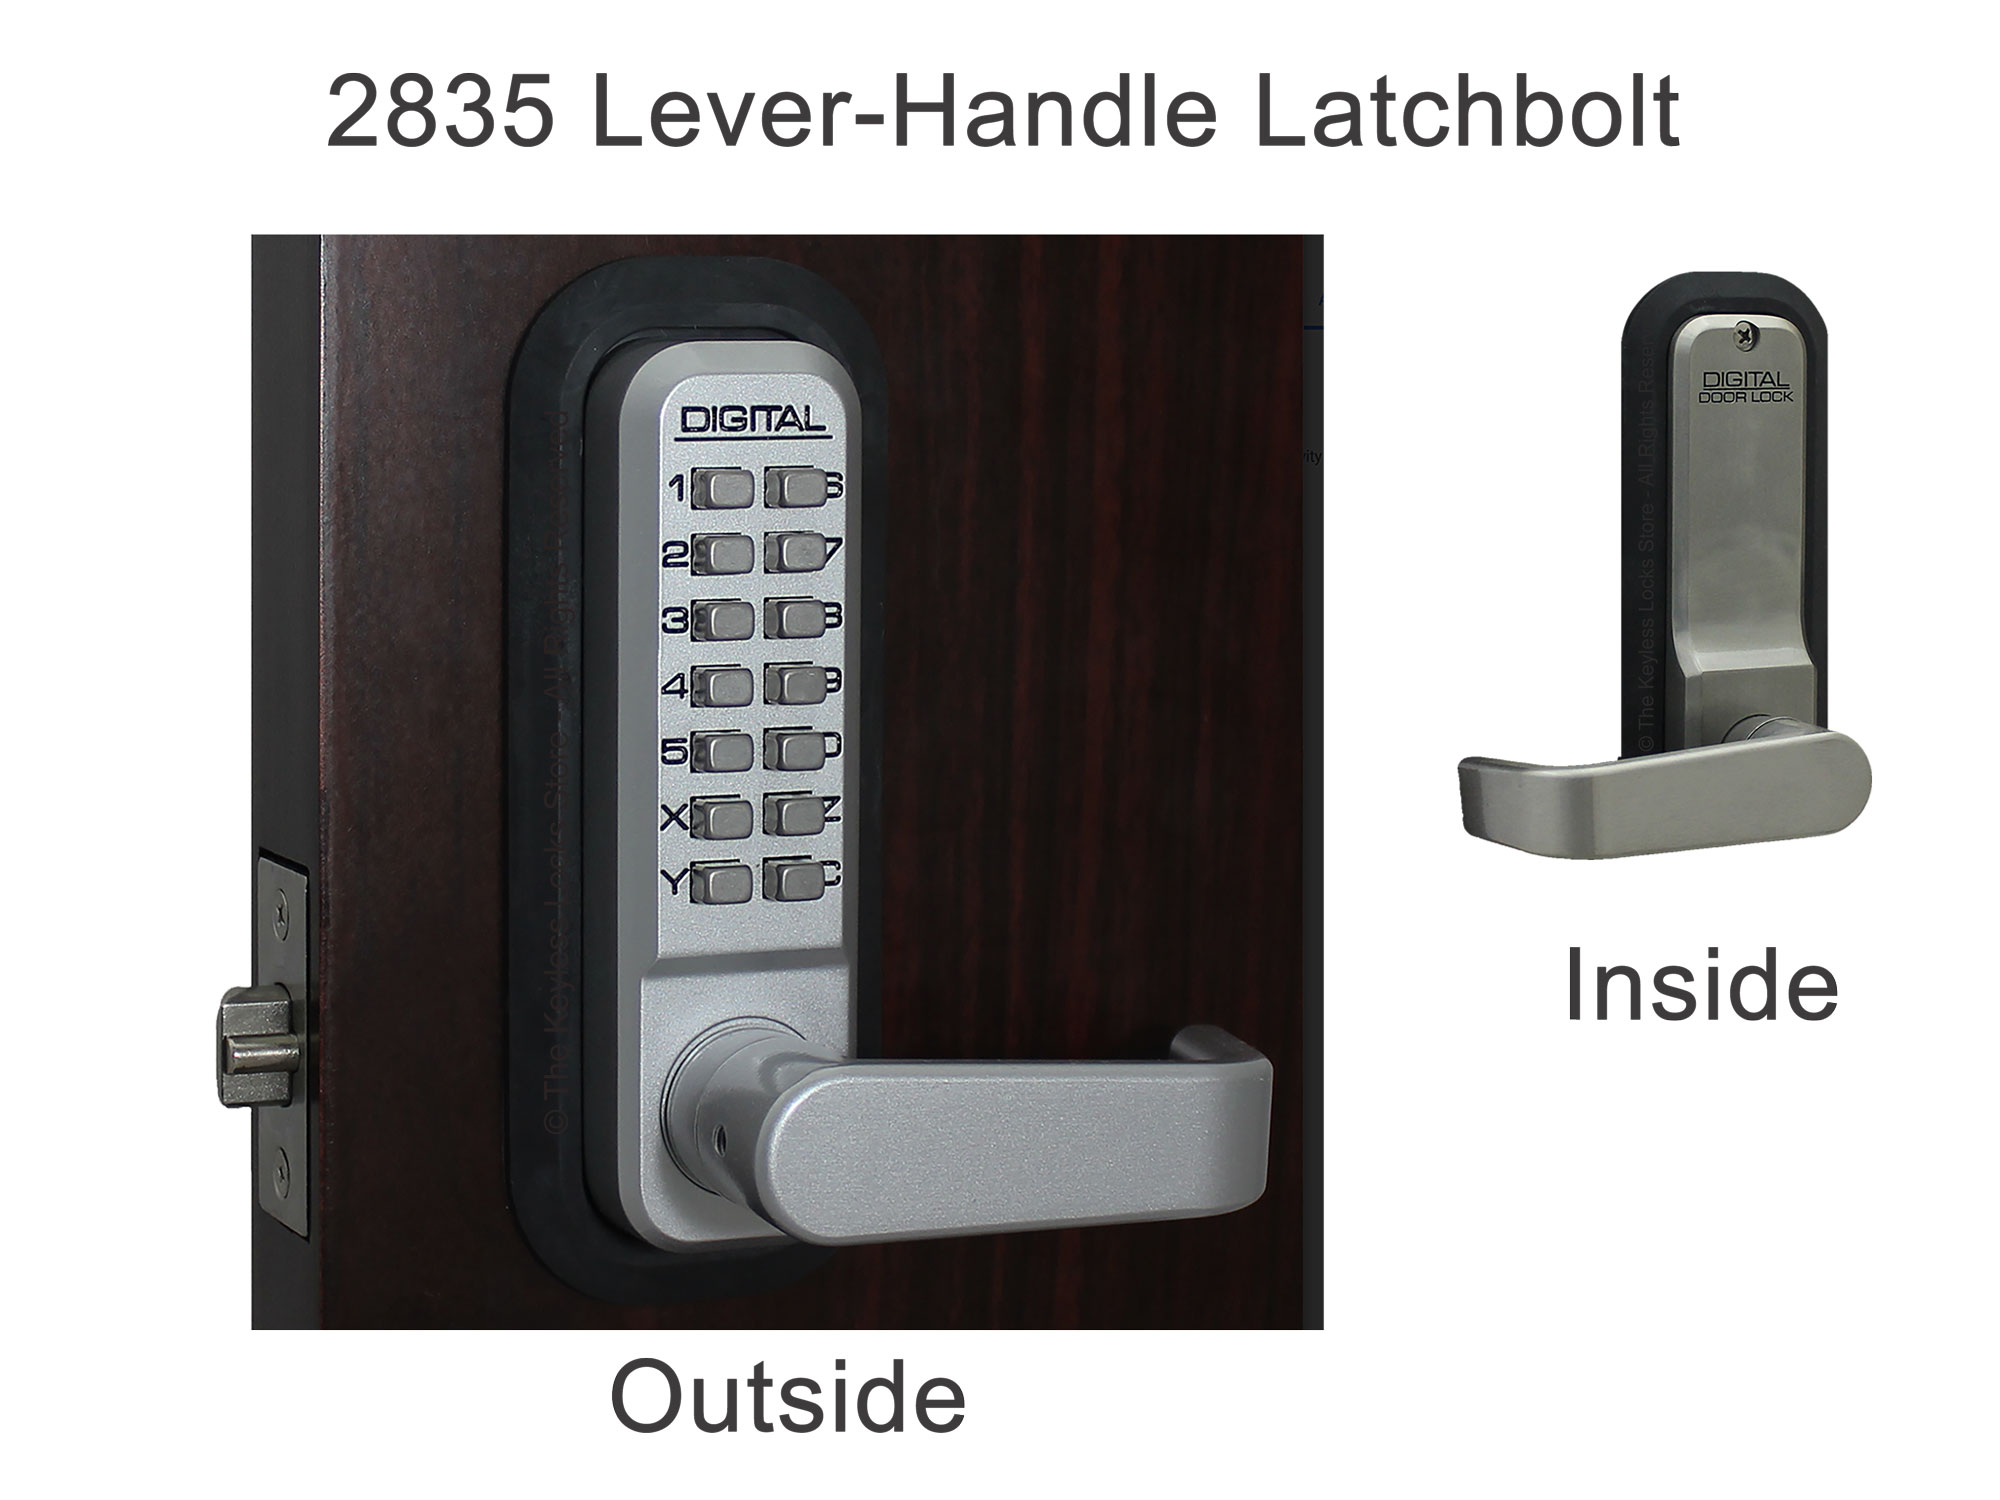 Lockey 2835 Lever-Handle Latchbolt Keypad Lock